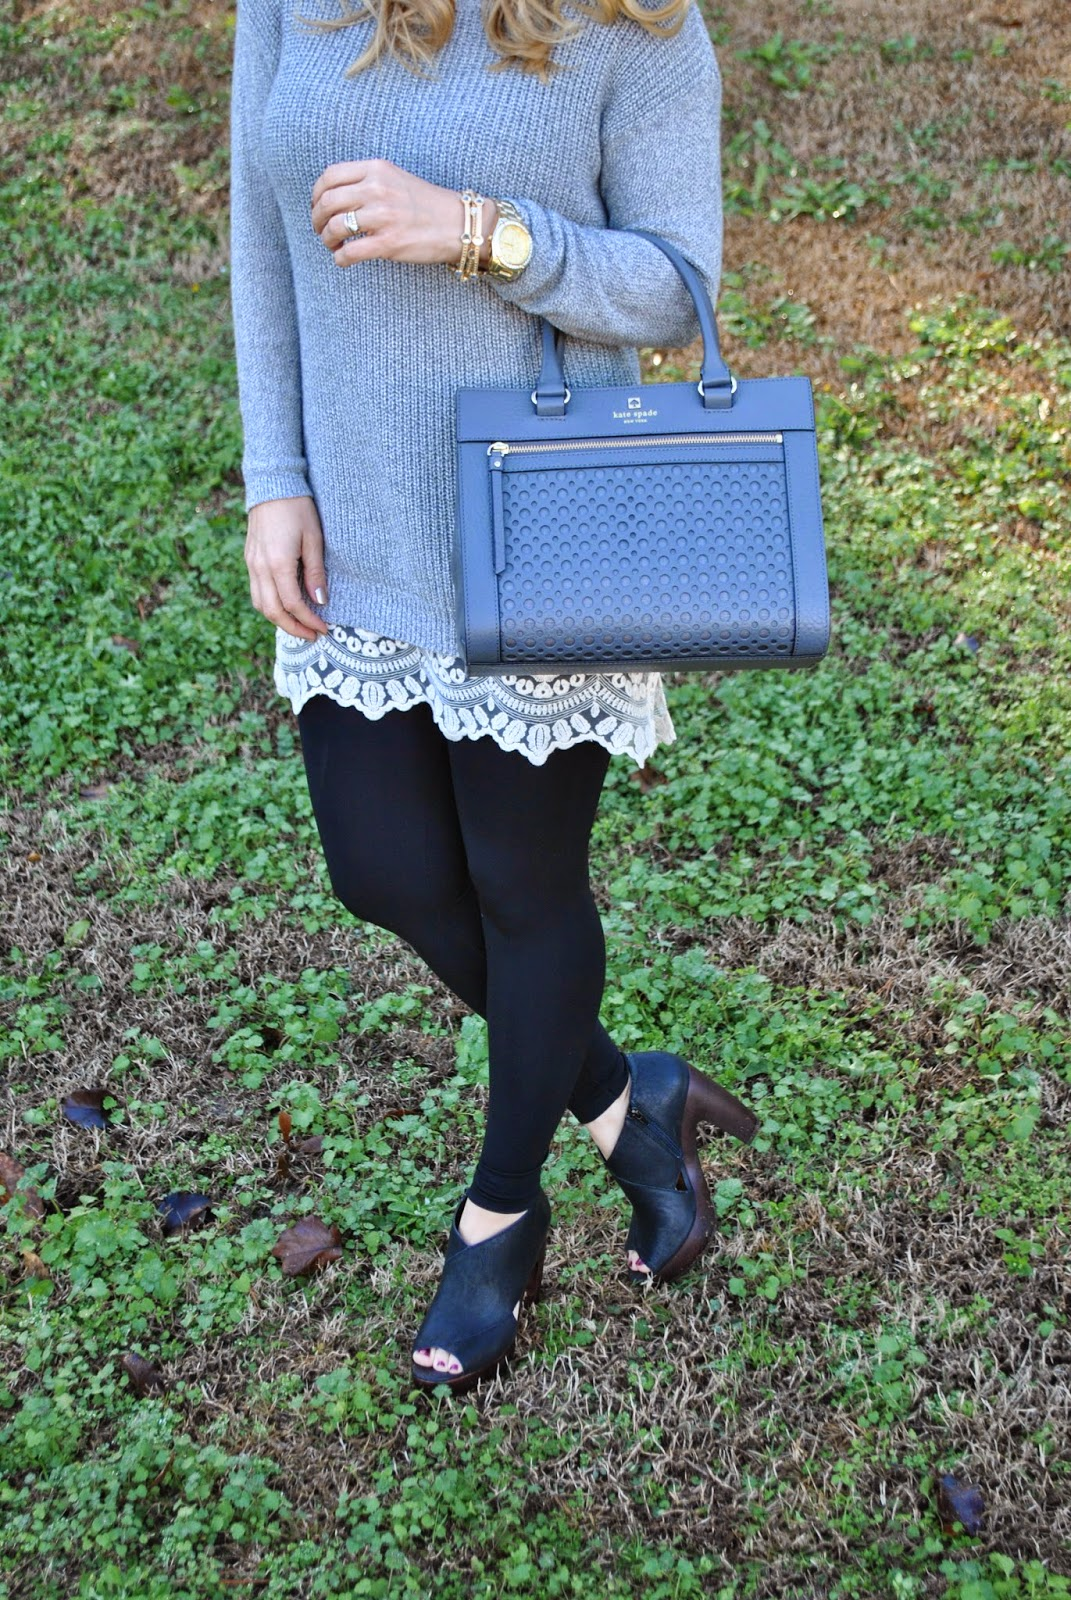 Loft Lace Sweater Kate Spade Handbag Lucky Brand Clogs Leather and Lace Date Night